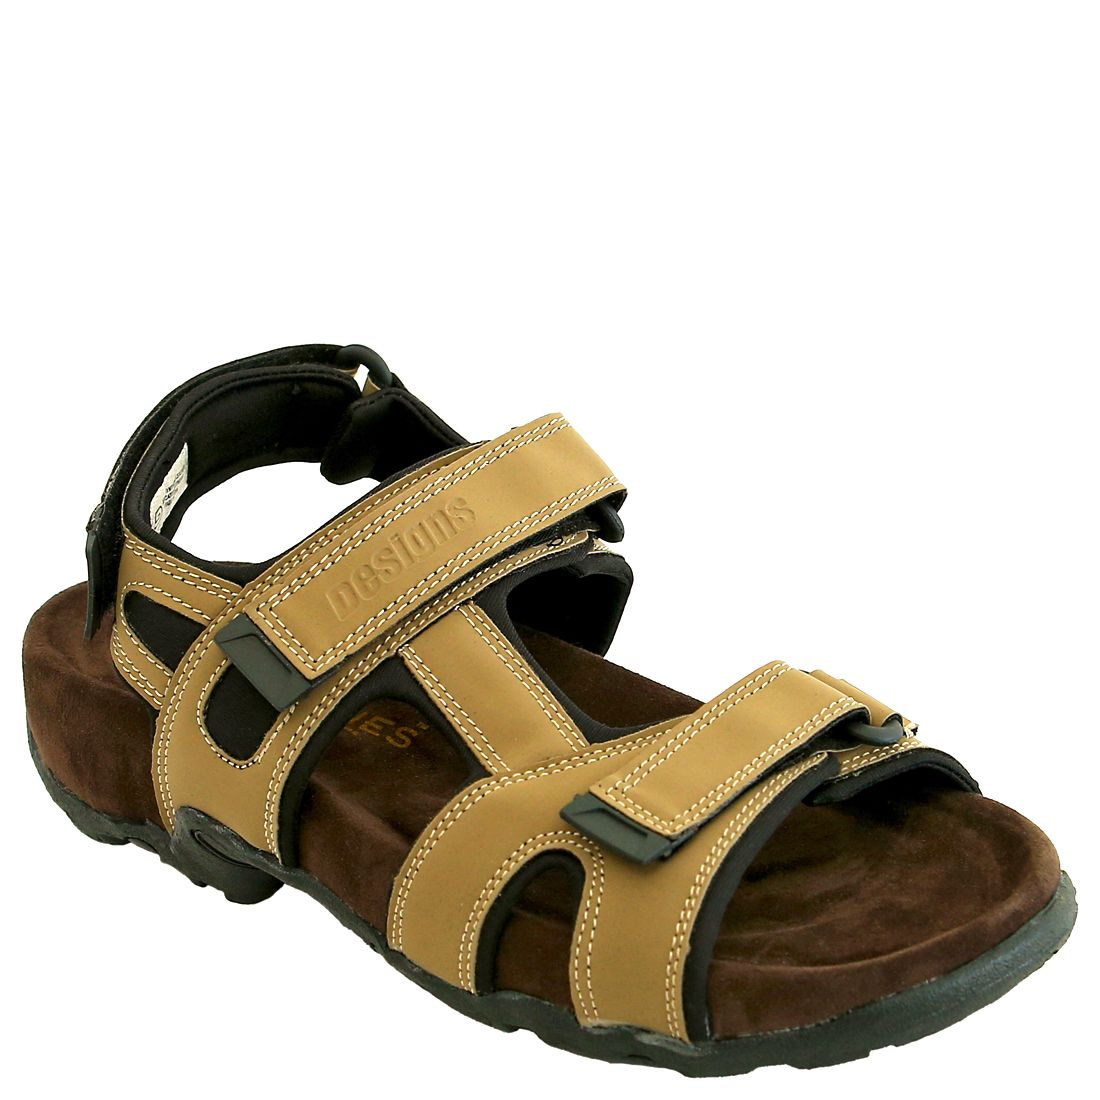 DSIGNES CHIKOO CASUAL SANDALS FOR MEN-20114